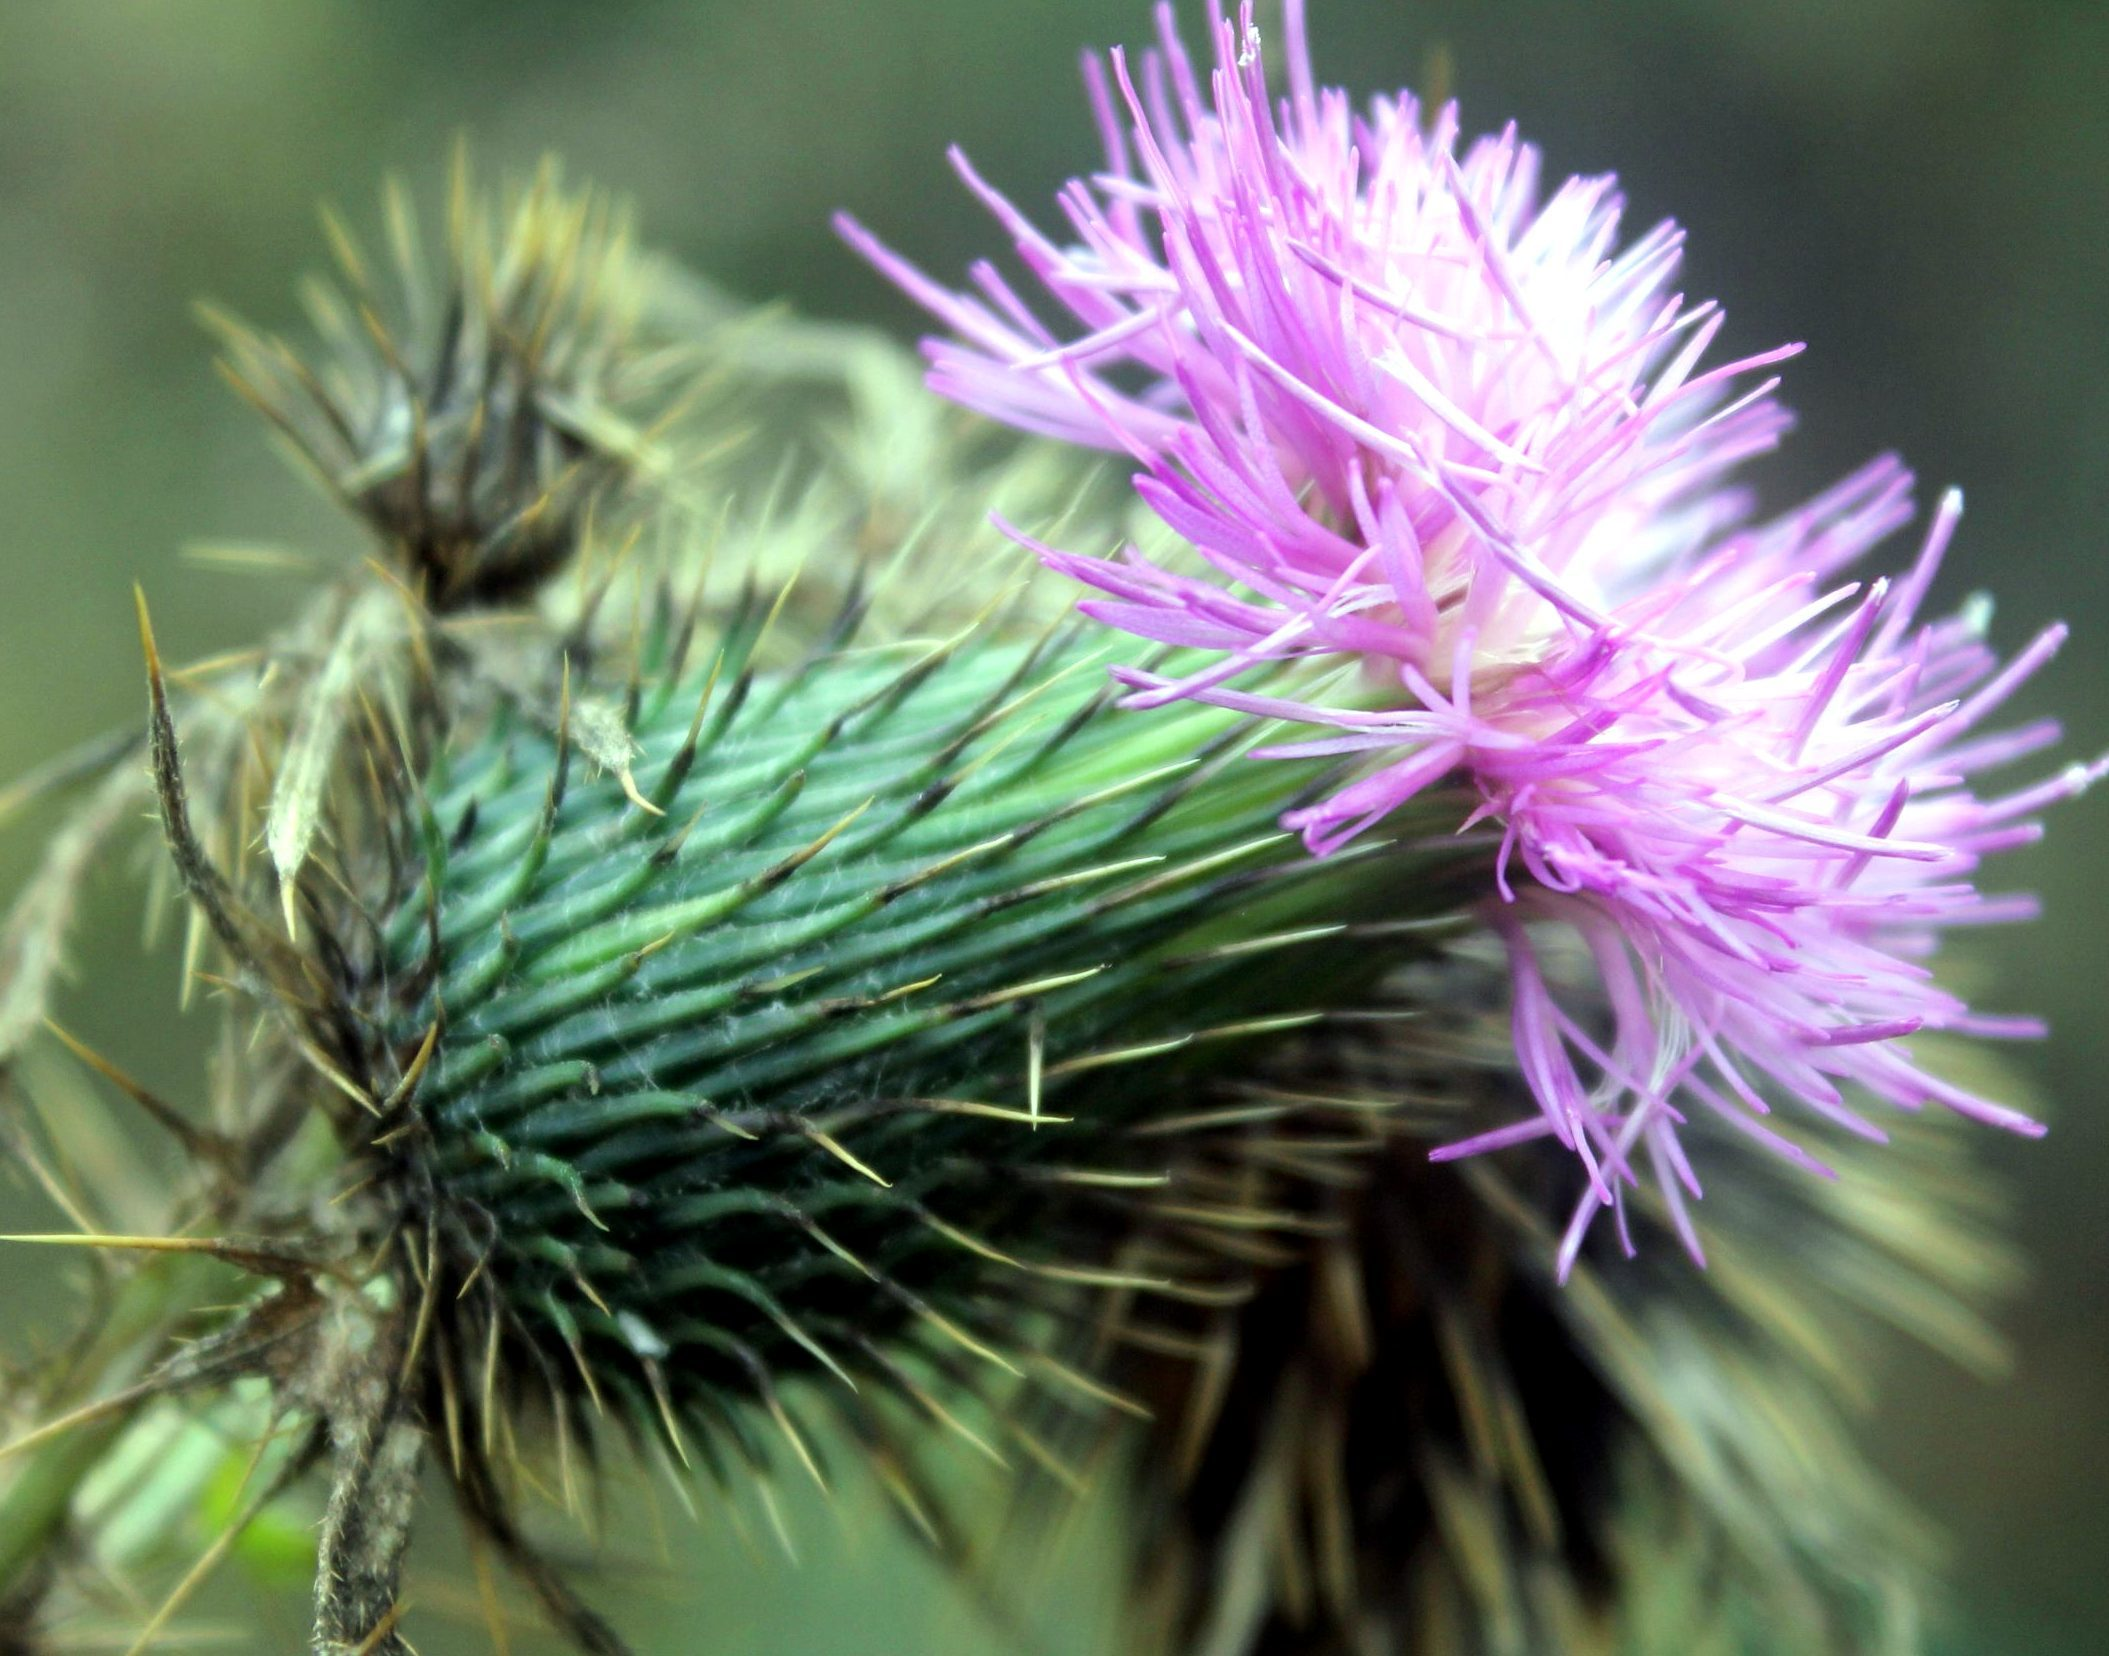 Free picture: thistle flower, thorny purple flower, thorns